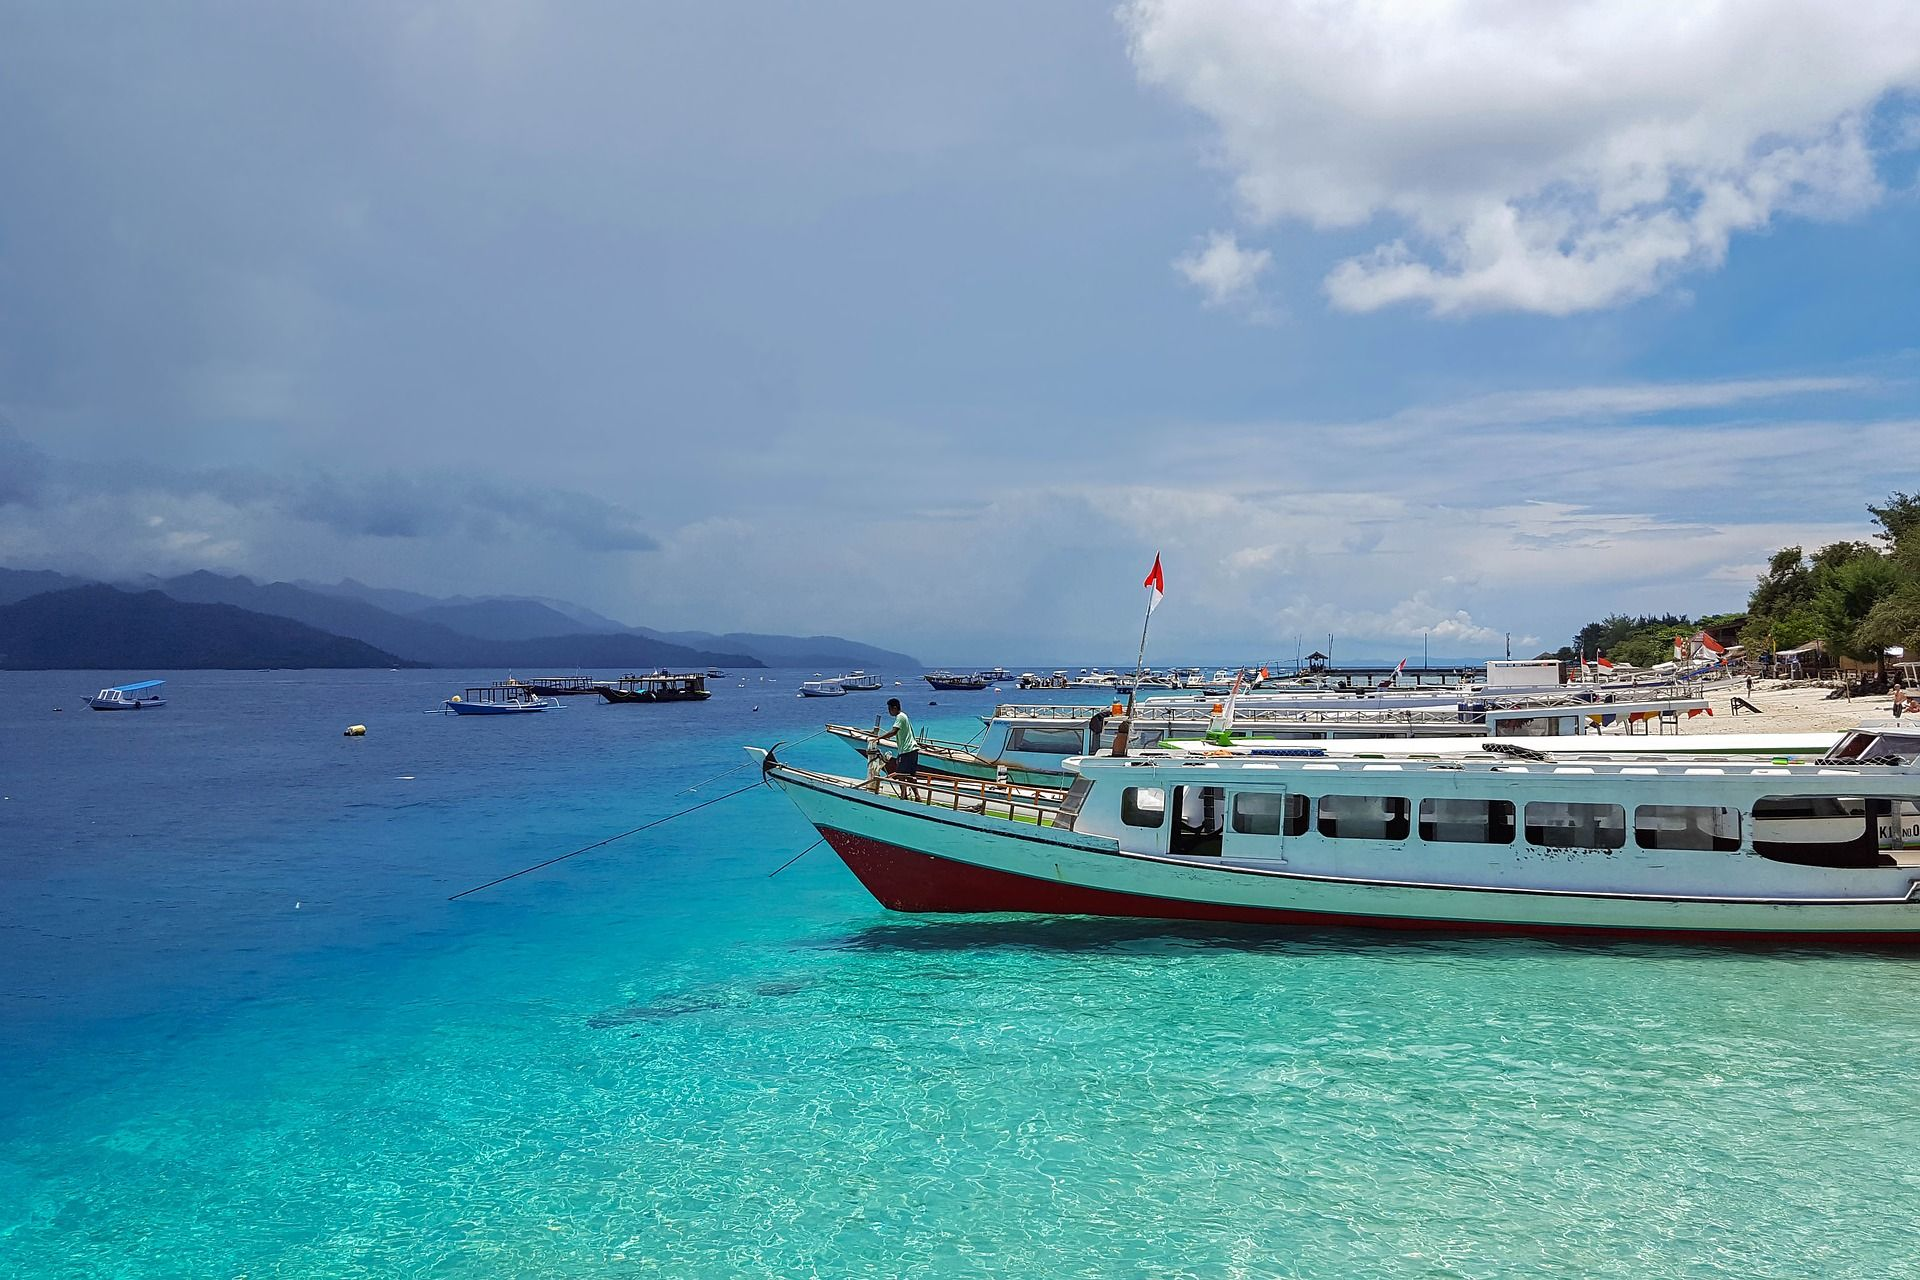 b0c1399ab033 Indonesia: For diving on the Gili Islands - Just Wanderlust